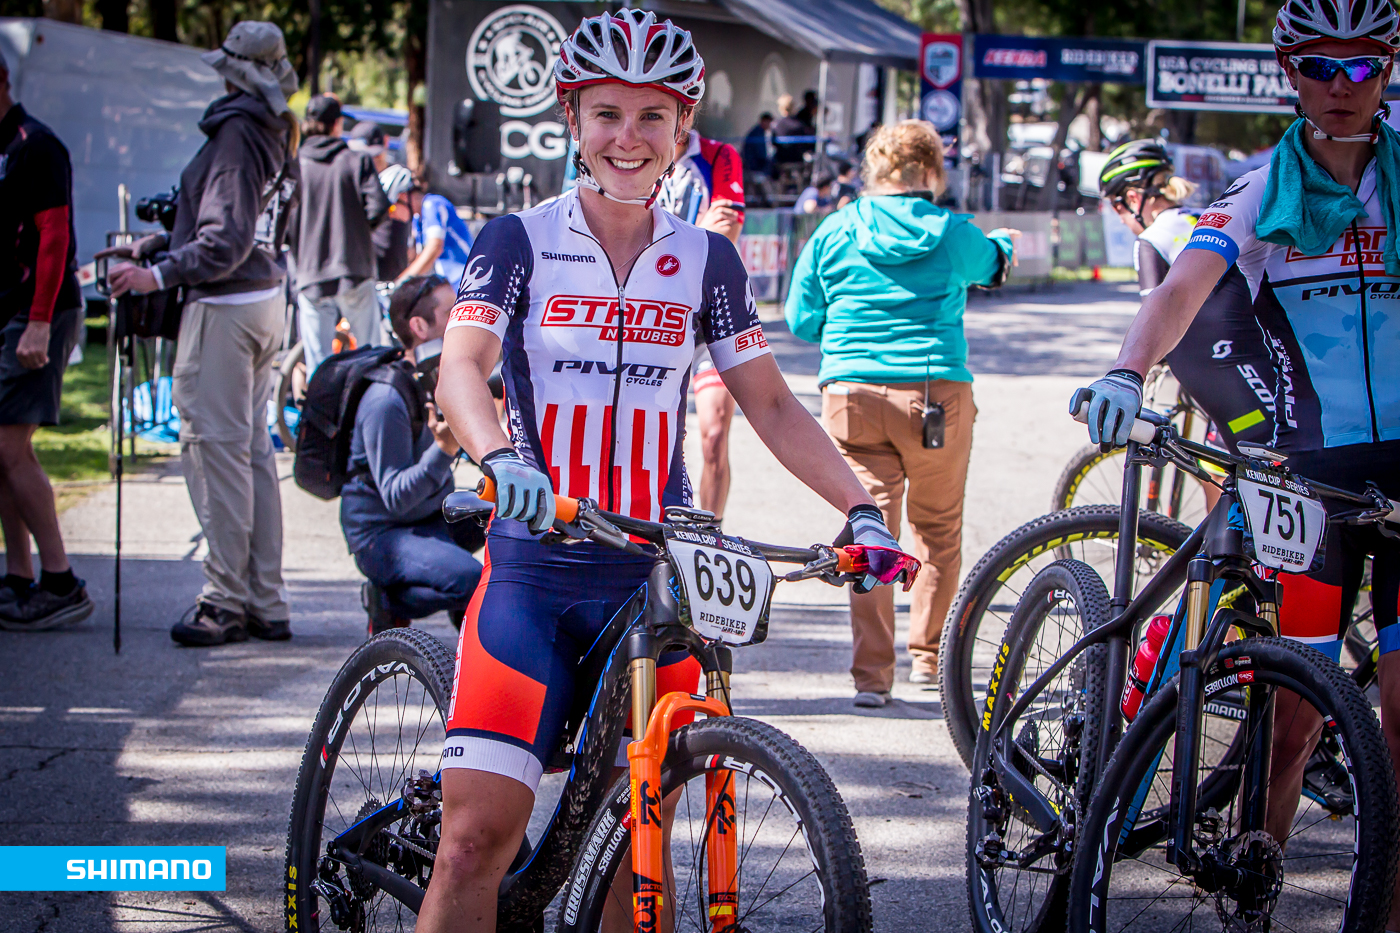 First race in the new Stars & Stripes kit! Photo: Joe Lawill